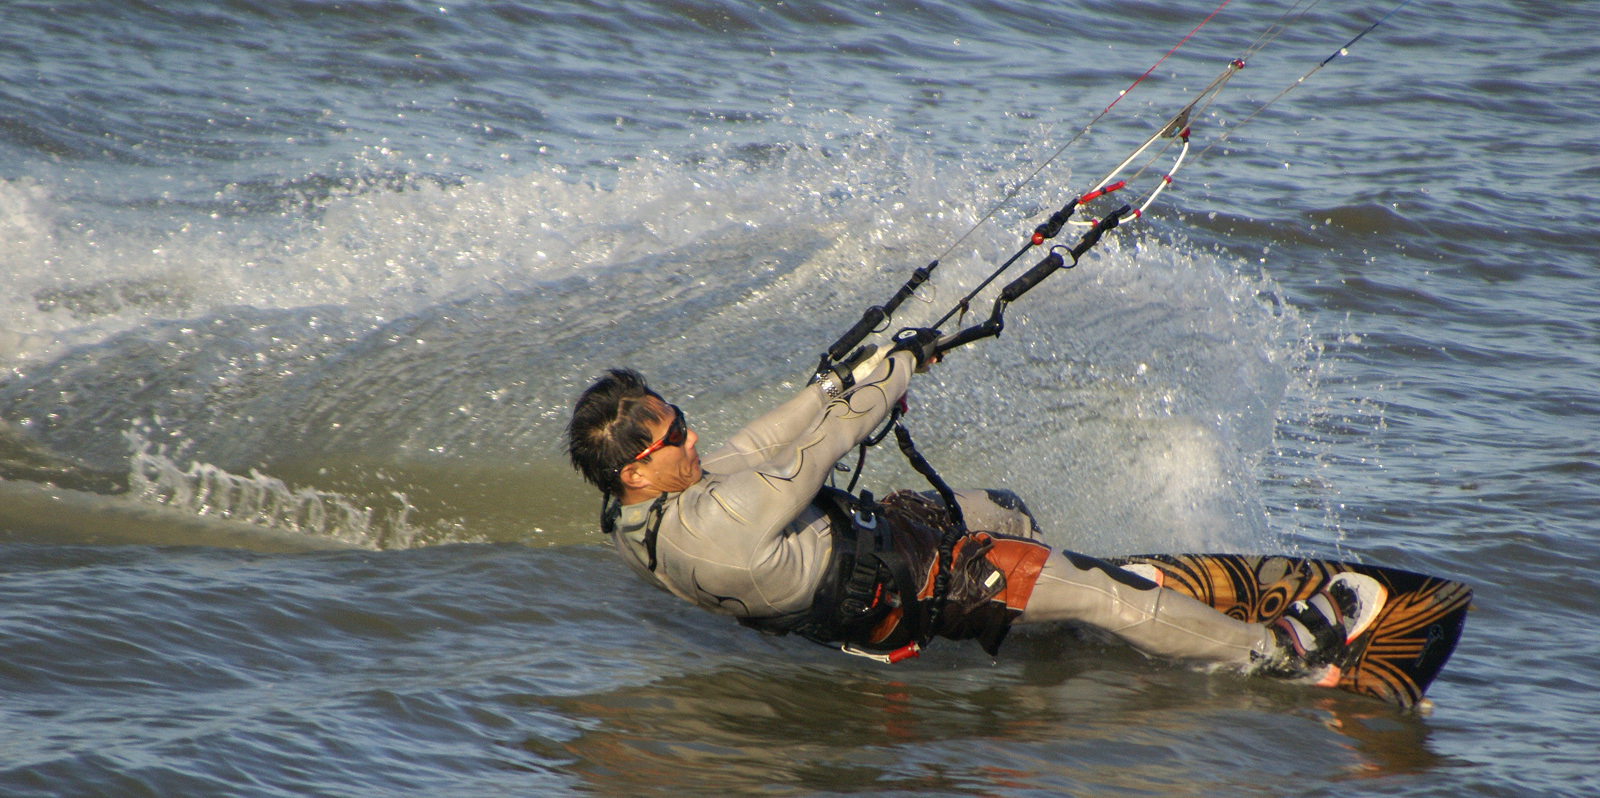 Kitesurfer pulls against kite